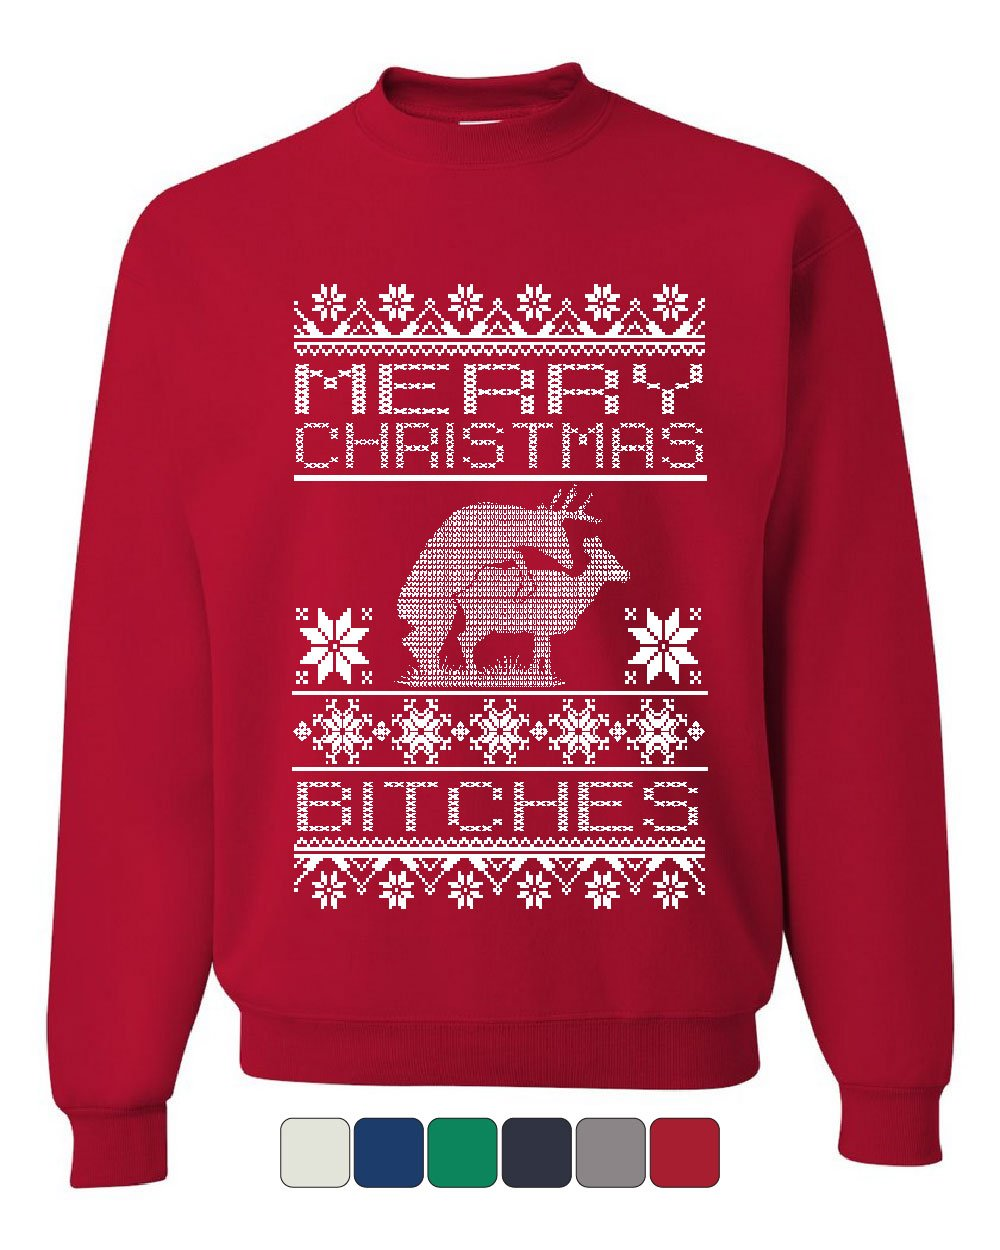 a87c79ebe Muscle Shirts +. All · Login · Create account · Home — Merry Christmas  Bitches Sweatshirt Deer Humping Ugly Sweatshirt Sweater. Product Image ...